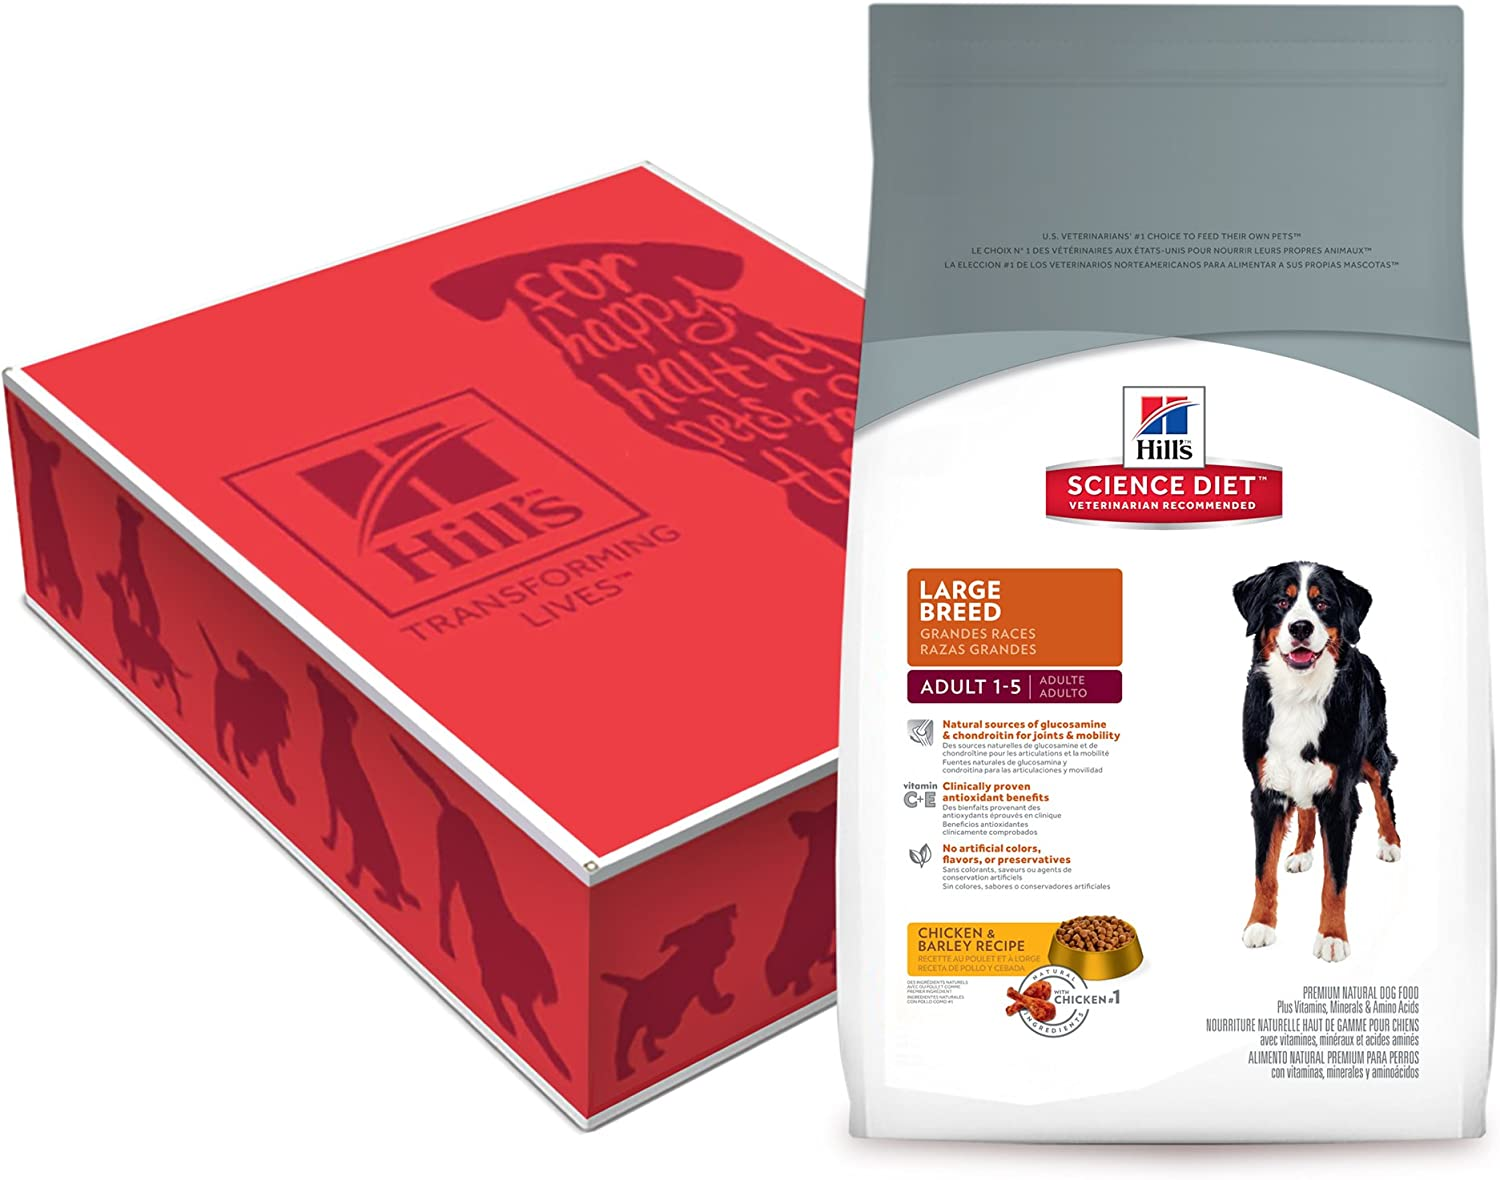 6. Hill's Science Diet Adult Large Breed Dry Dog Food